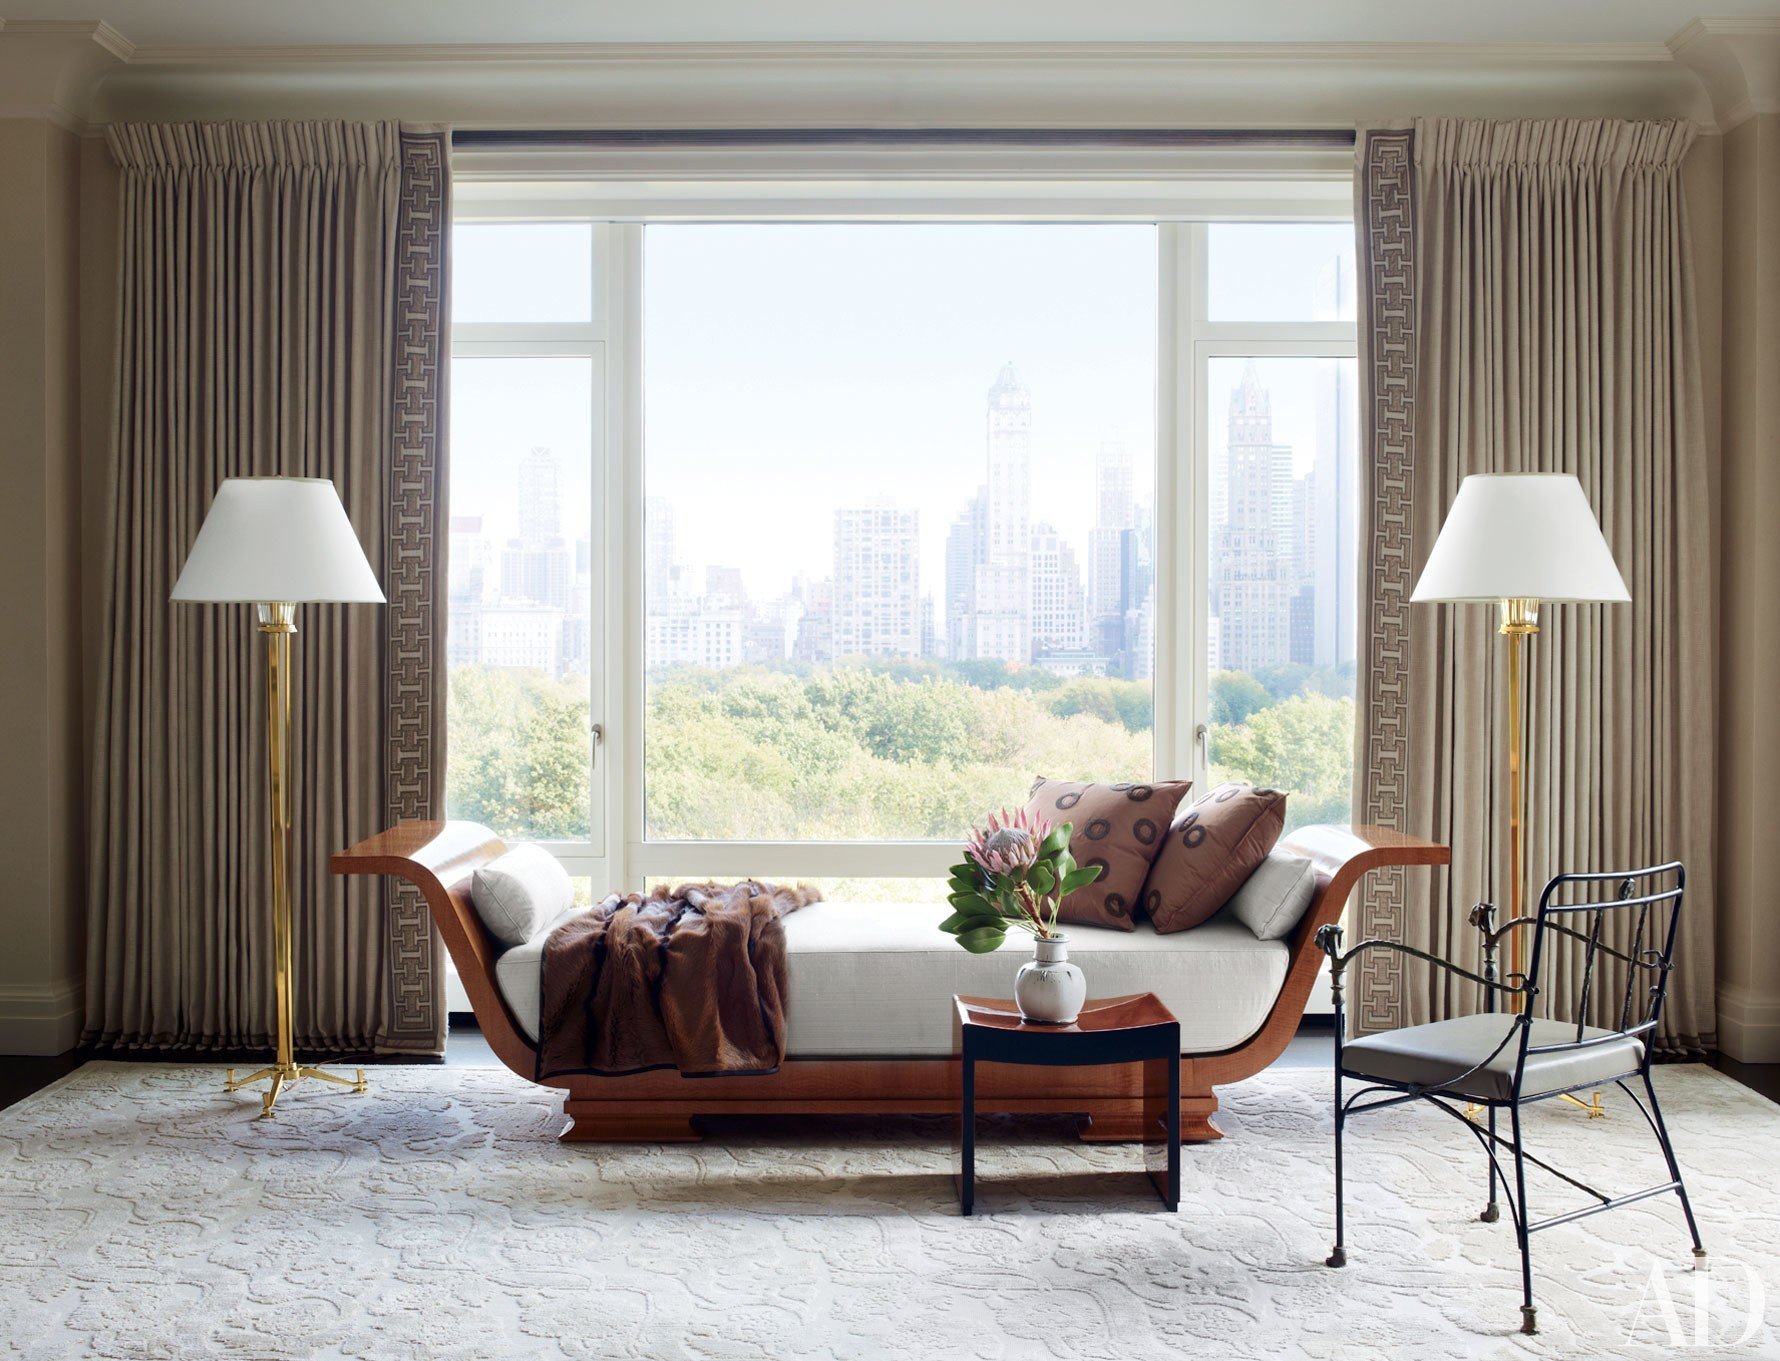 Modern Daybed Living Room Decorating Ideas Unique How to Style A Daybed S